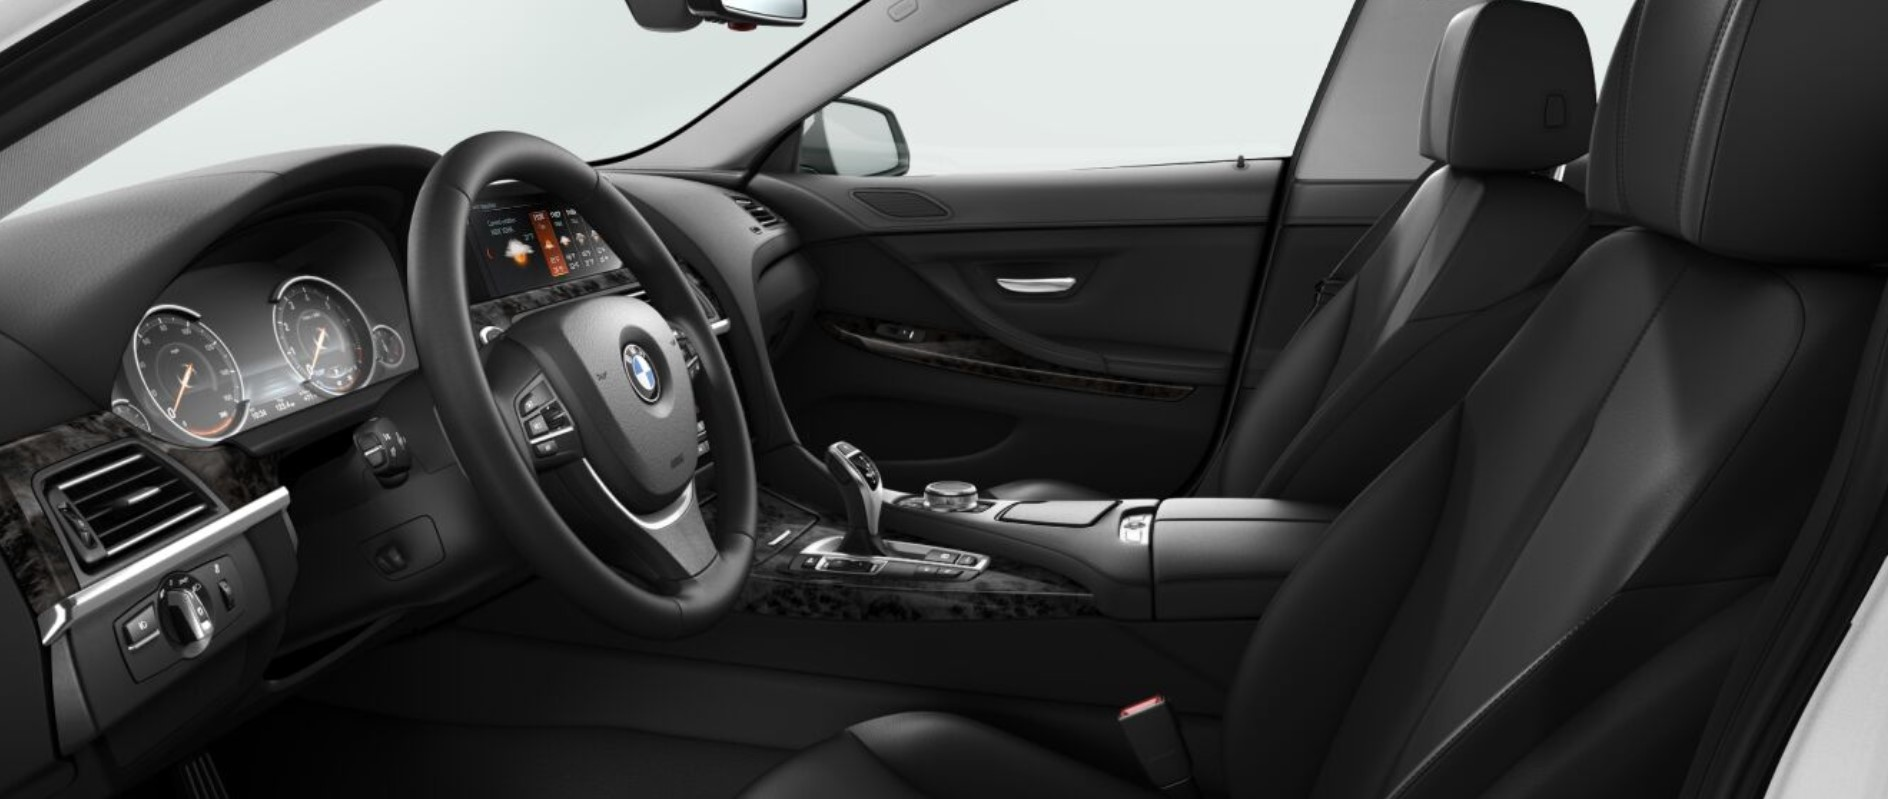 2018 BMW 640i Sedan Black Leather Interior Picture